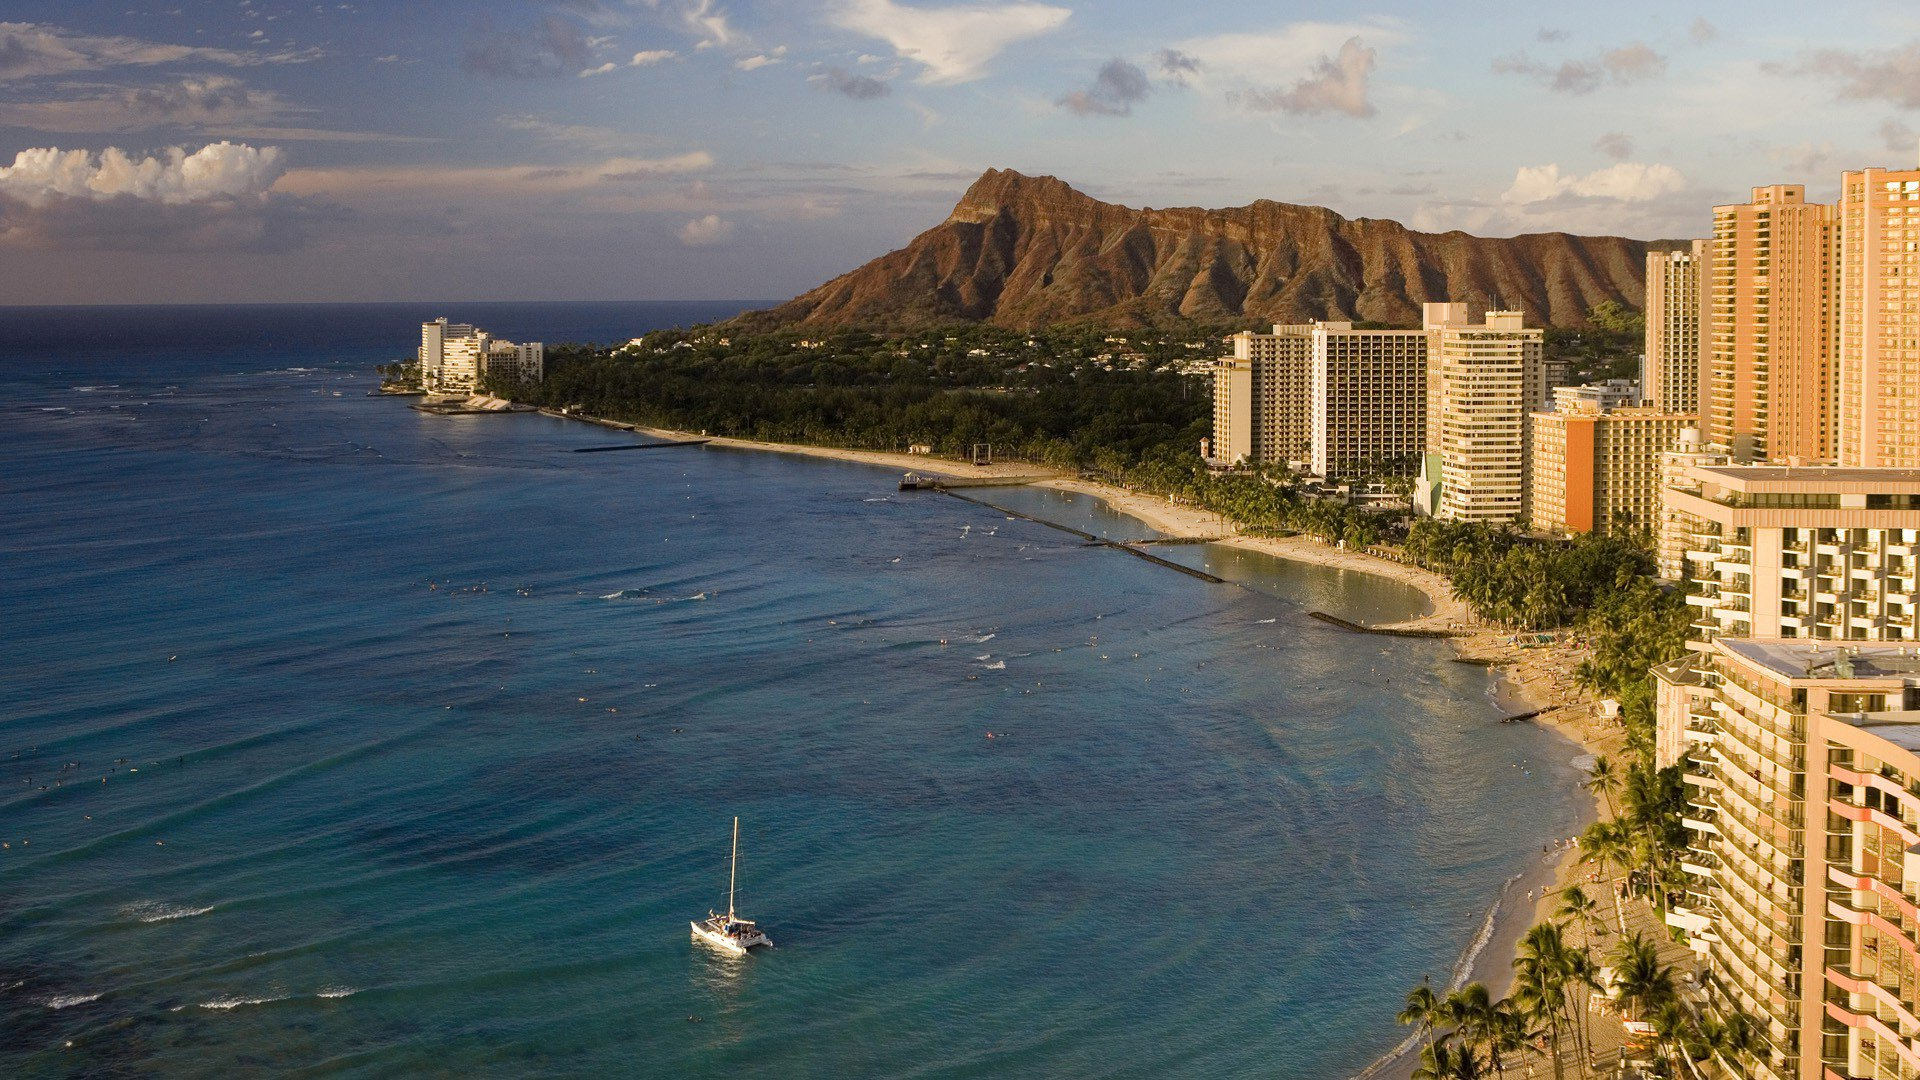 Waikiki Beach Honolulu Oahu, Hawaii HD Wallpaper